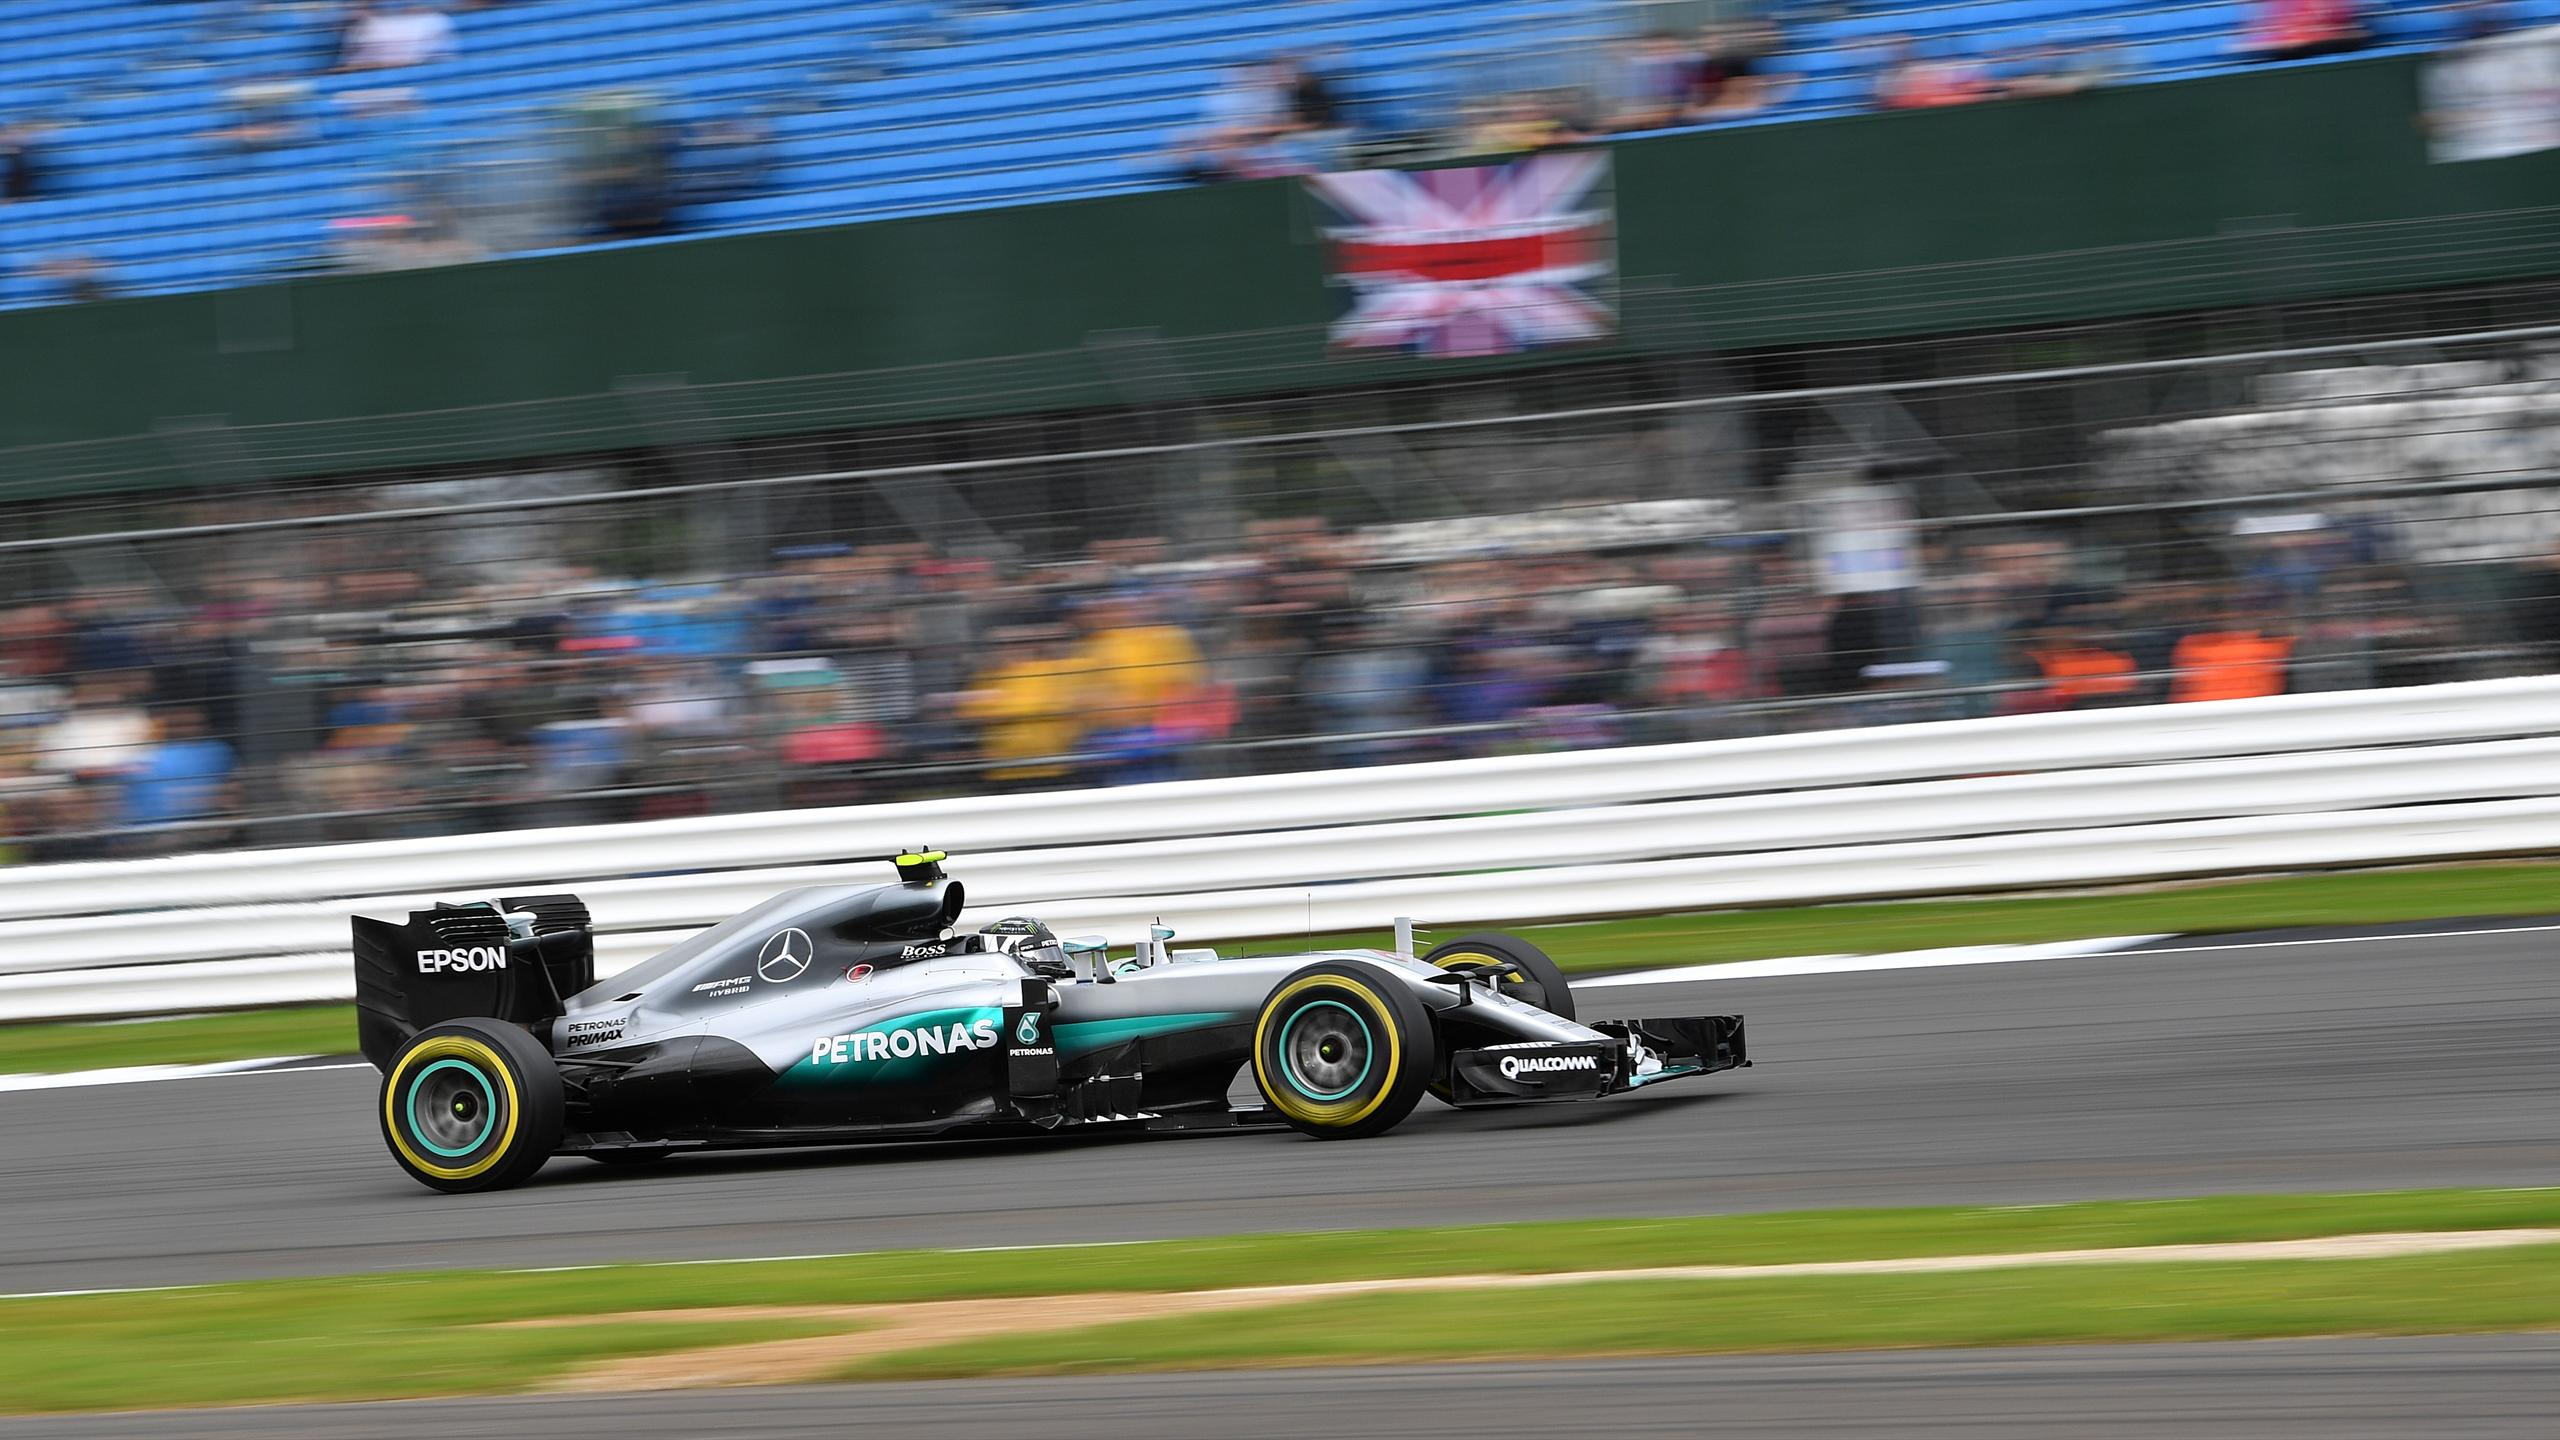 Mercedes AMG Petronas F1 Team's German driver Nico Rosberg drives during the third practice session during at Silverstone motor racing circuit in Silverstone